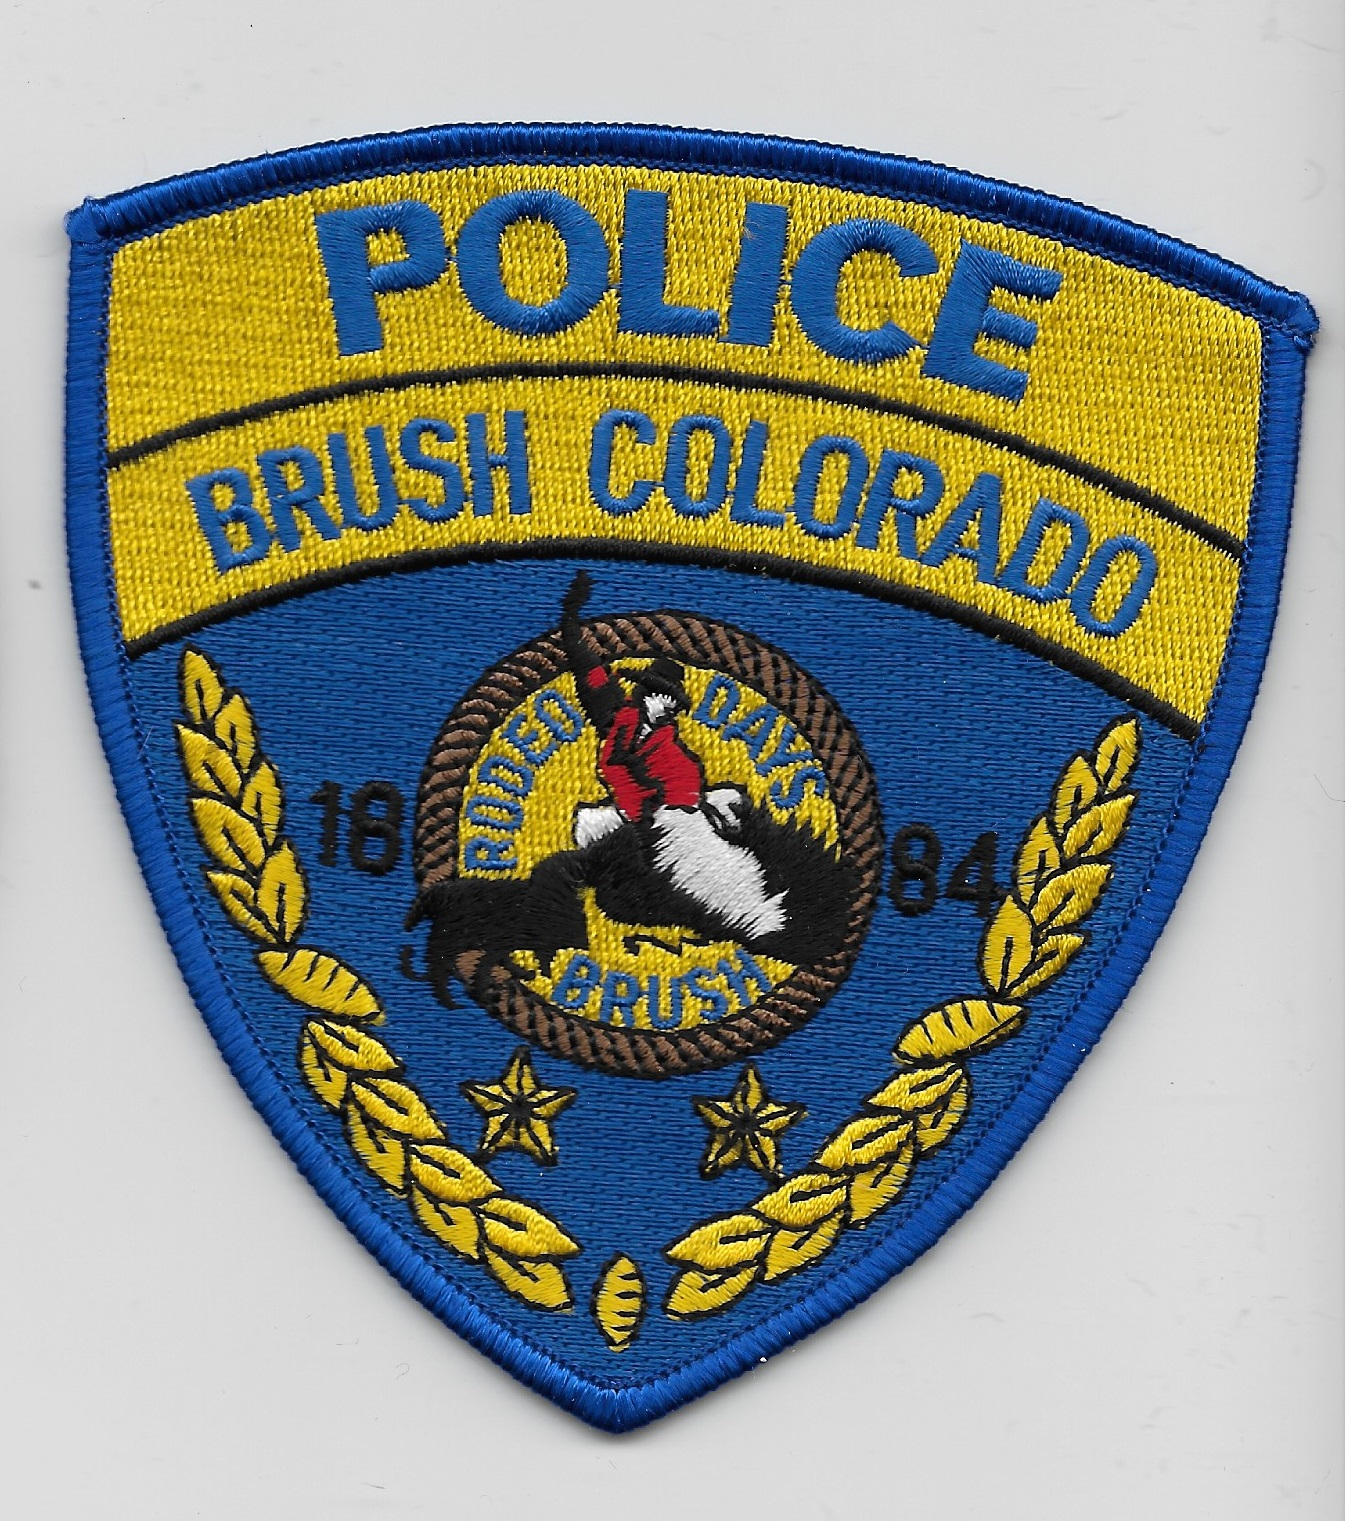 Brush Police CO